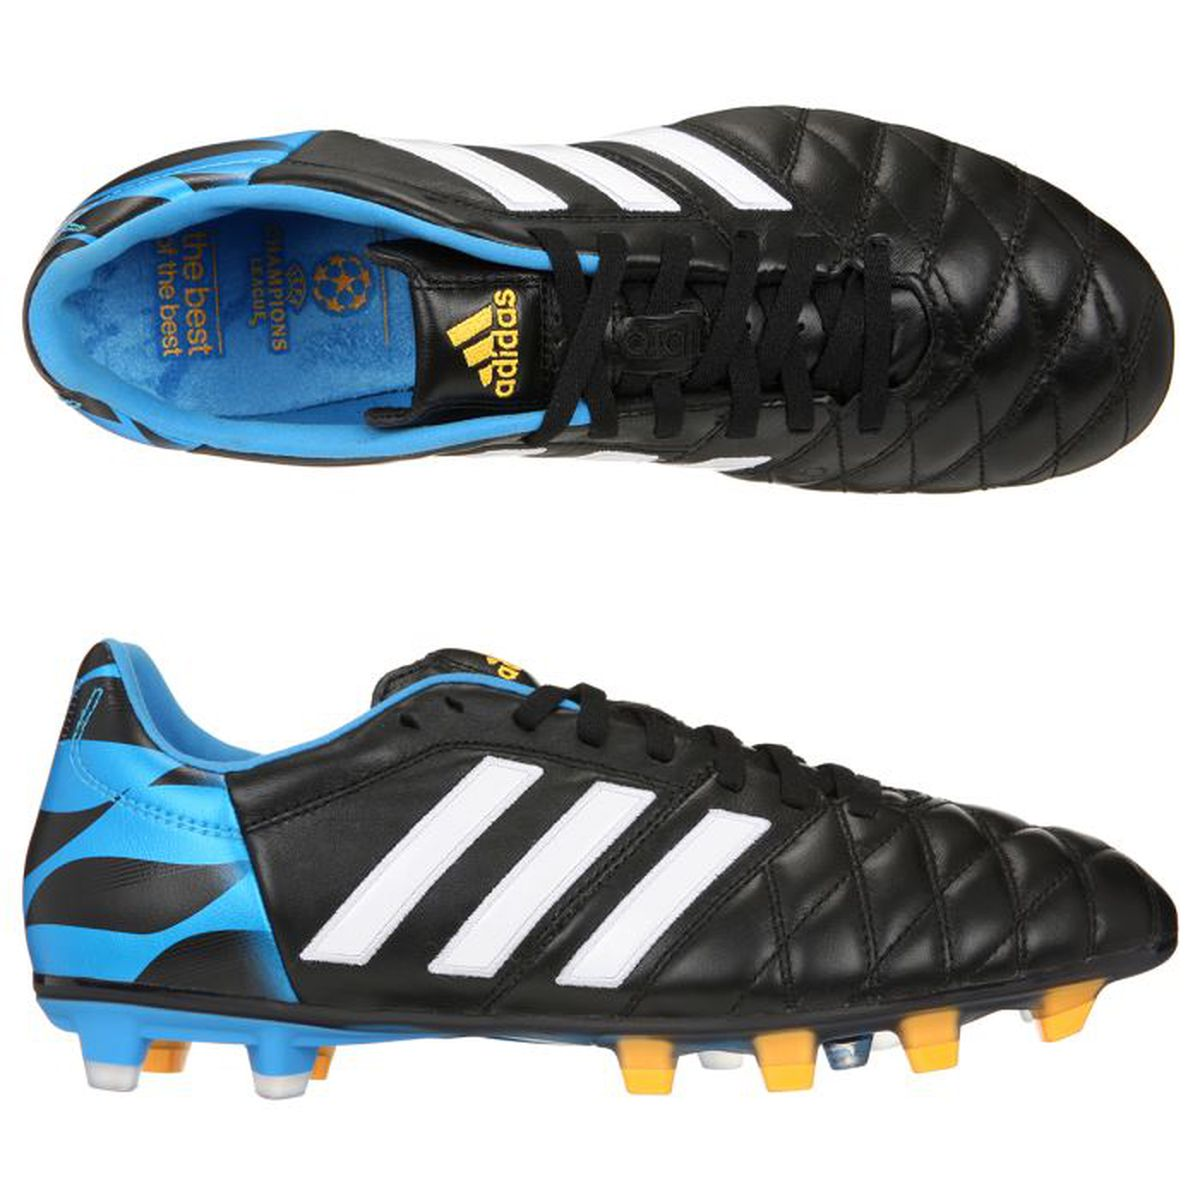 Adidas 11pro chaussures